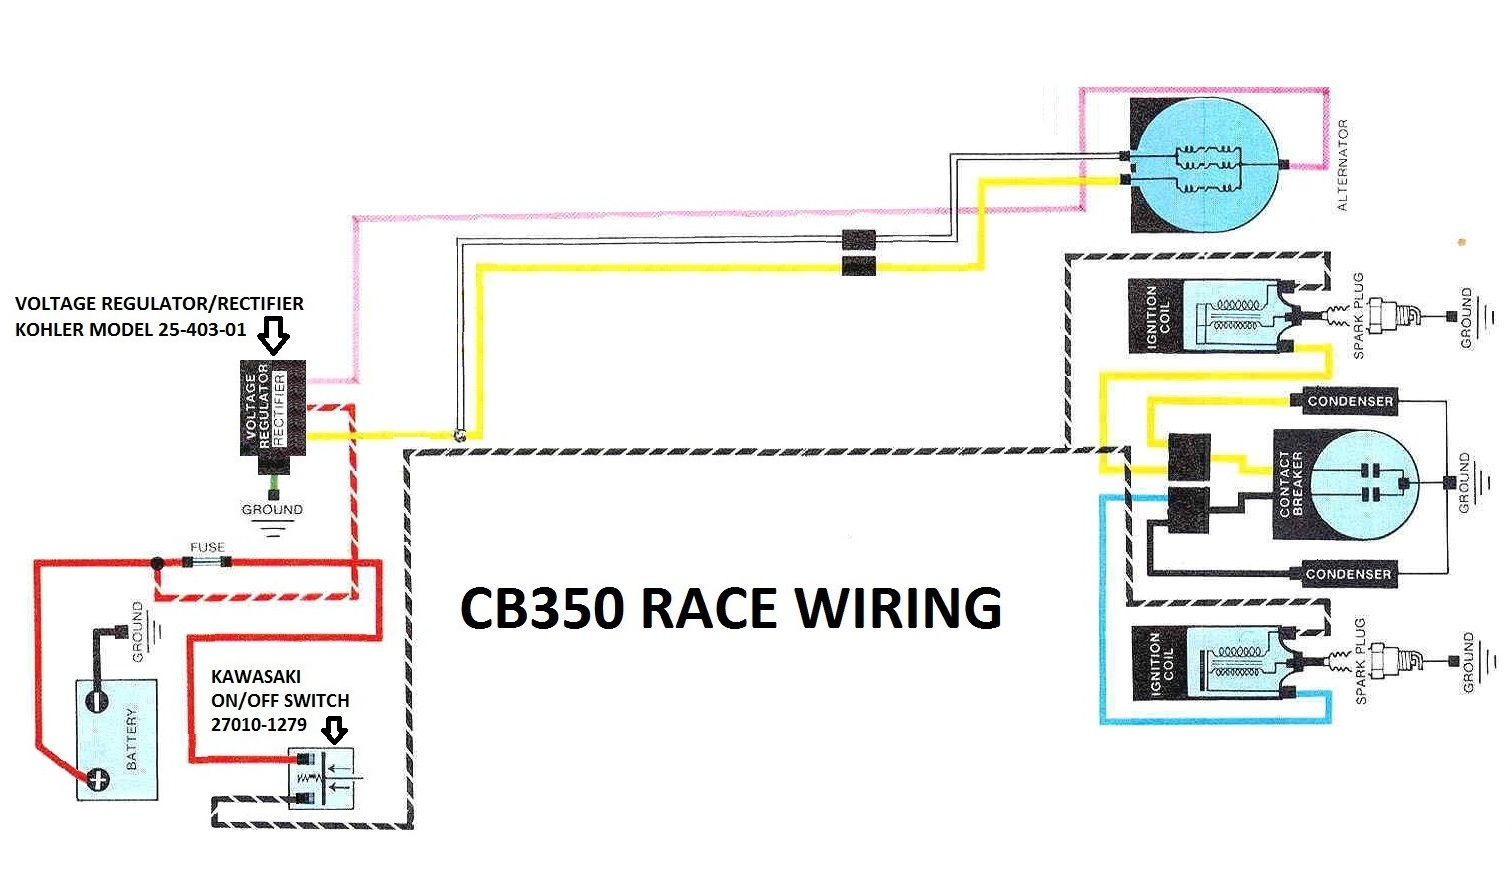 24487d1368387127 cb350 race wiring question about voltage regulator wiring cb350 race wiring cb350 race wiring a question about voltage regulator wiring total loss ignition wiring diagram at n-0.co